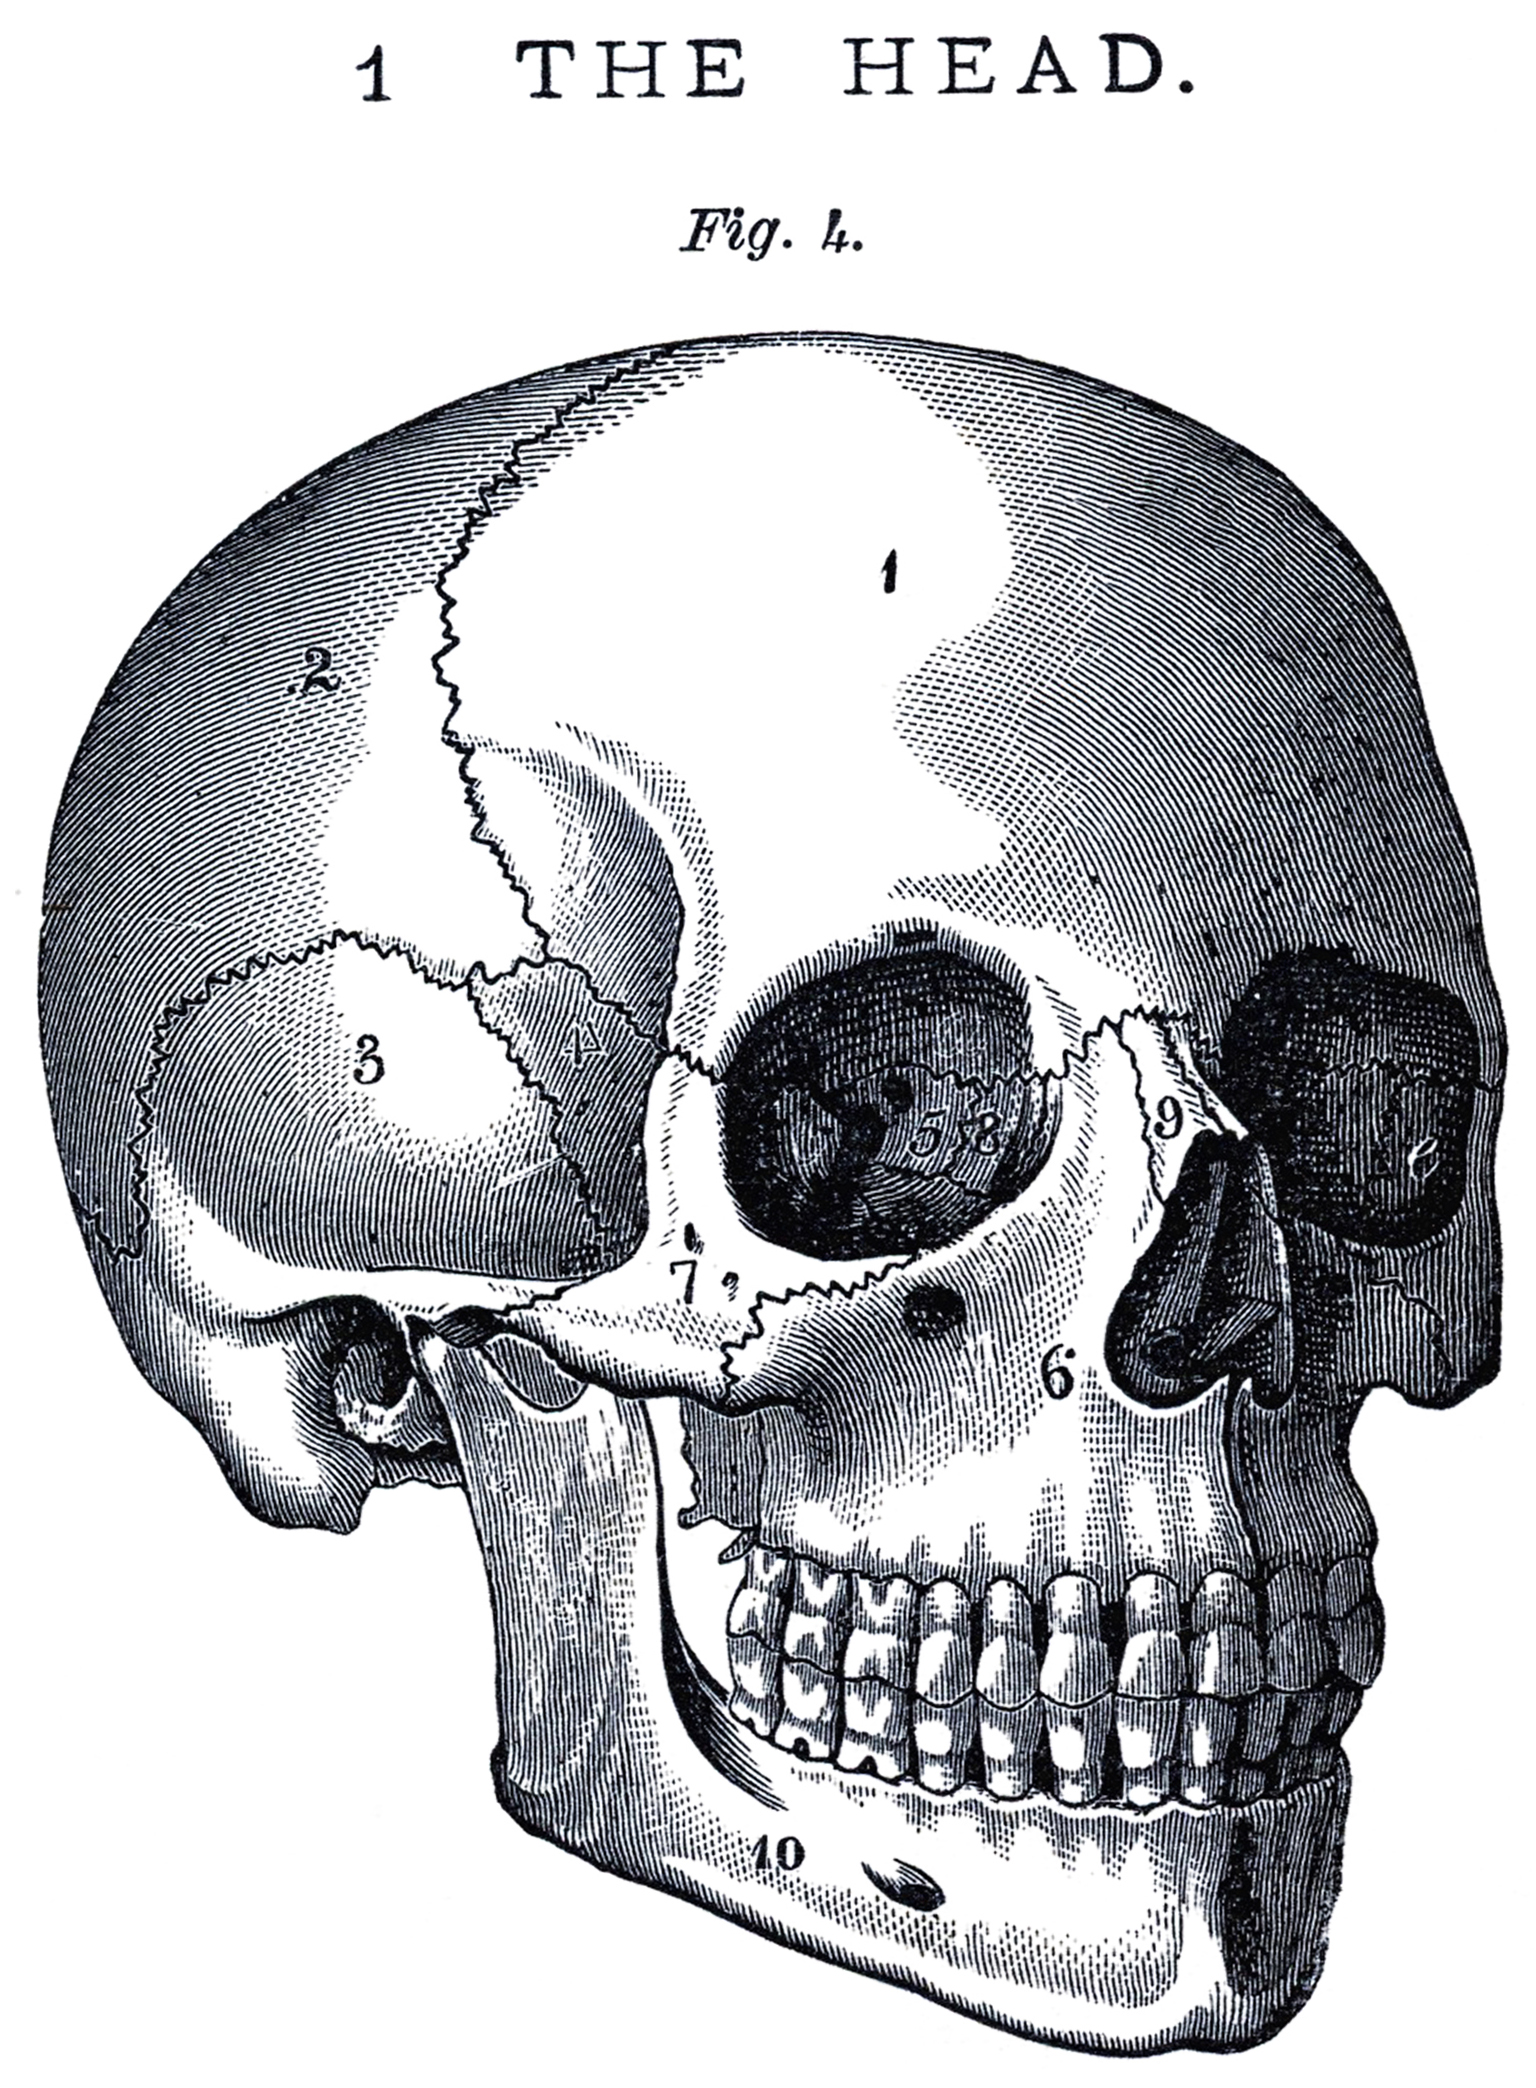 Vintage Anatomy Skull Image - The Graphics Fairy